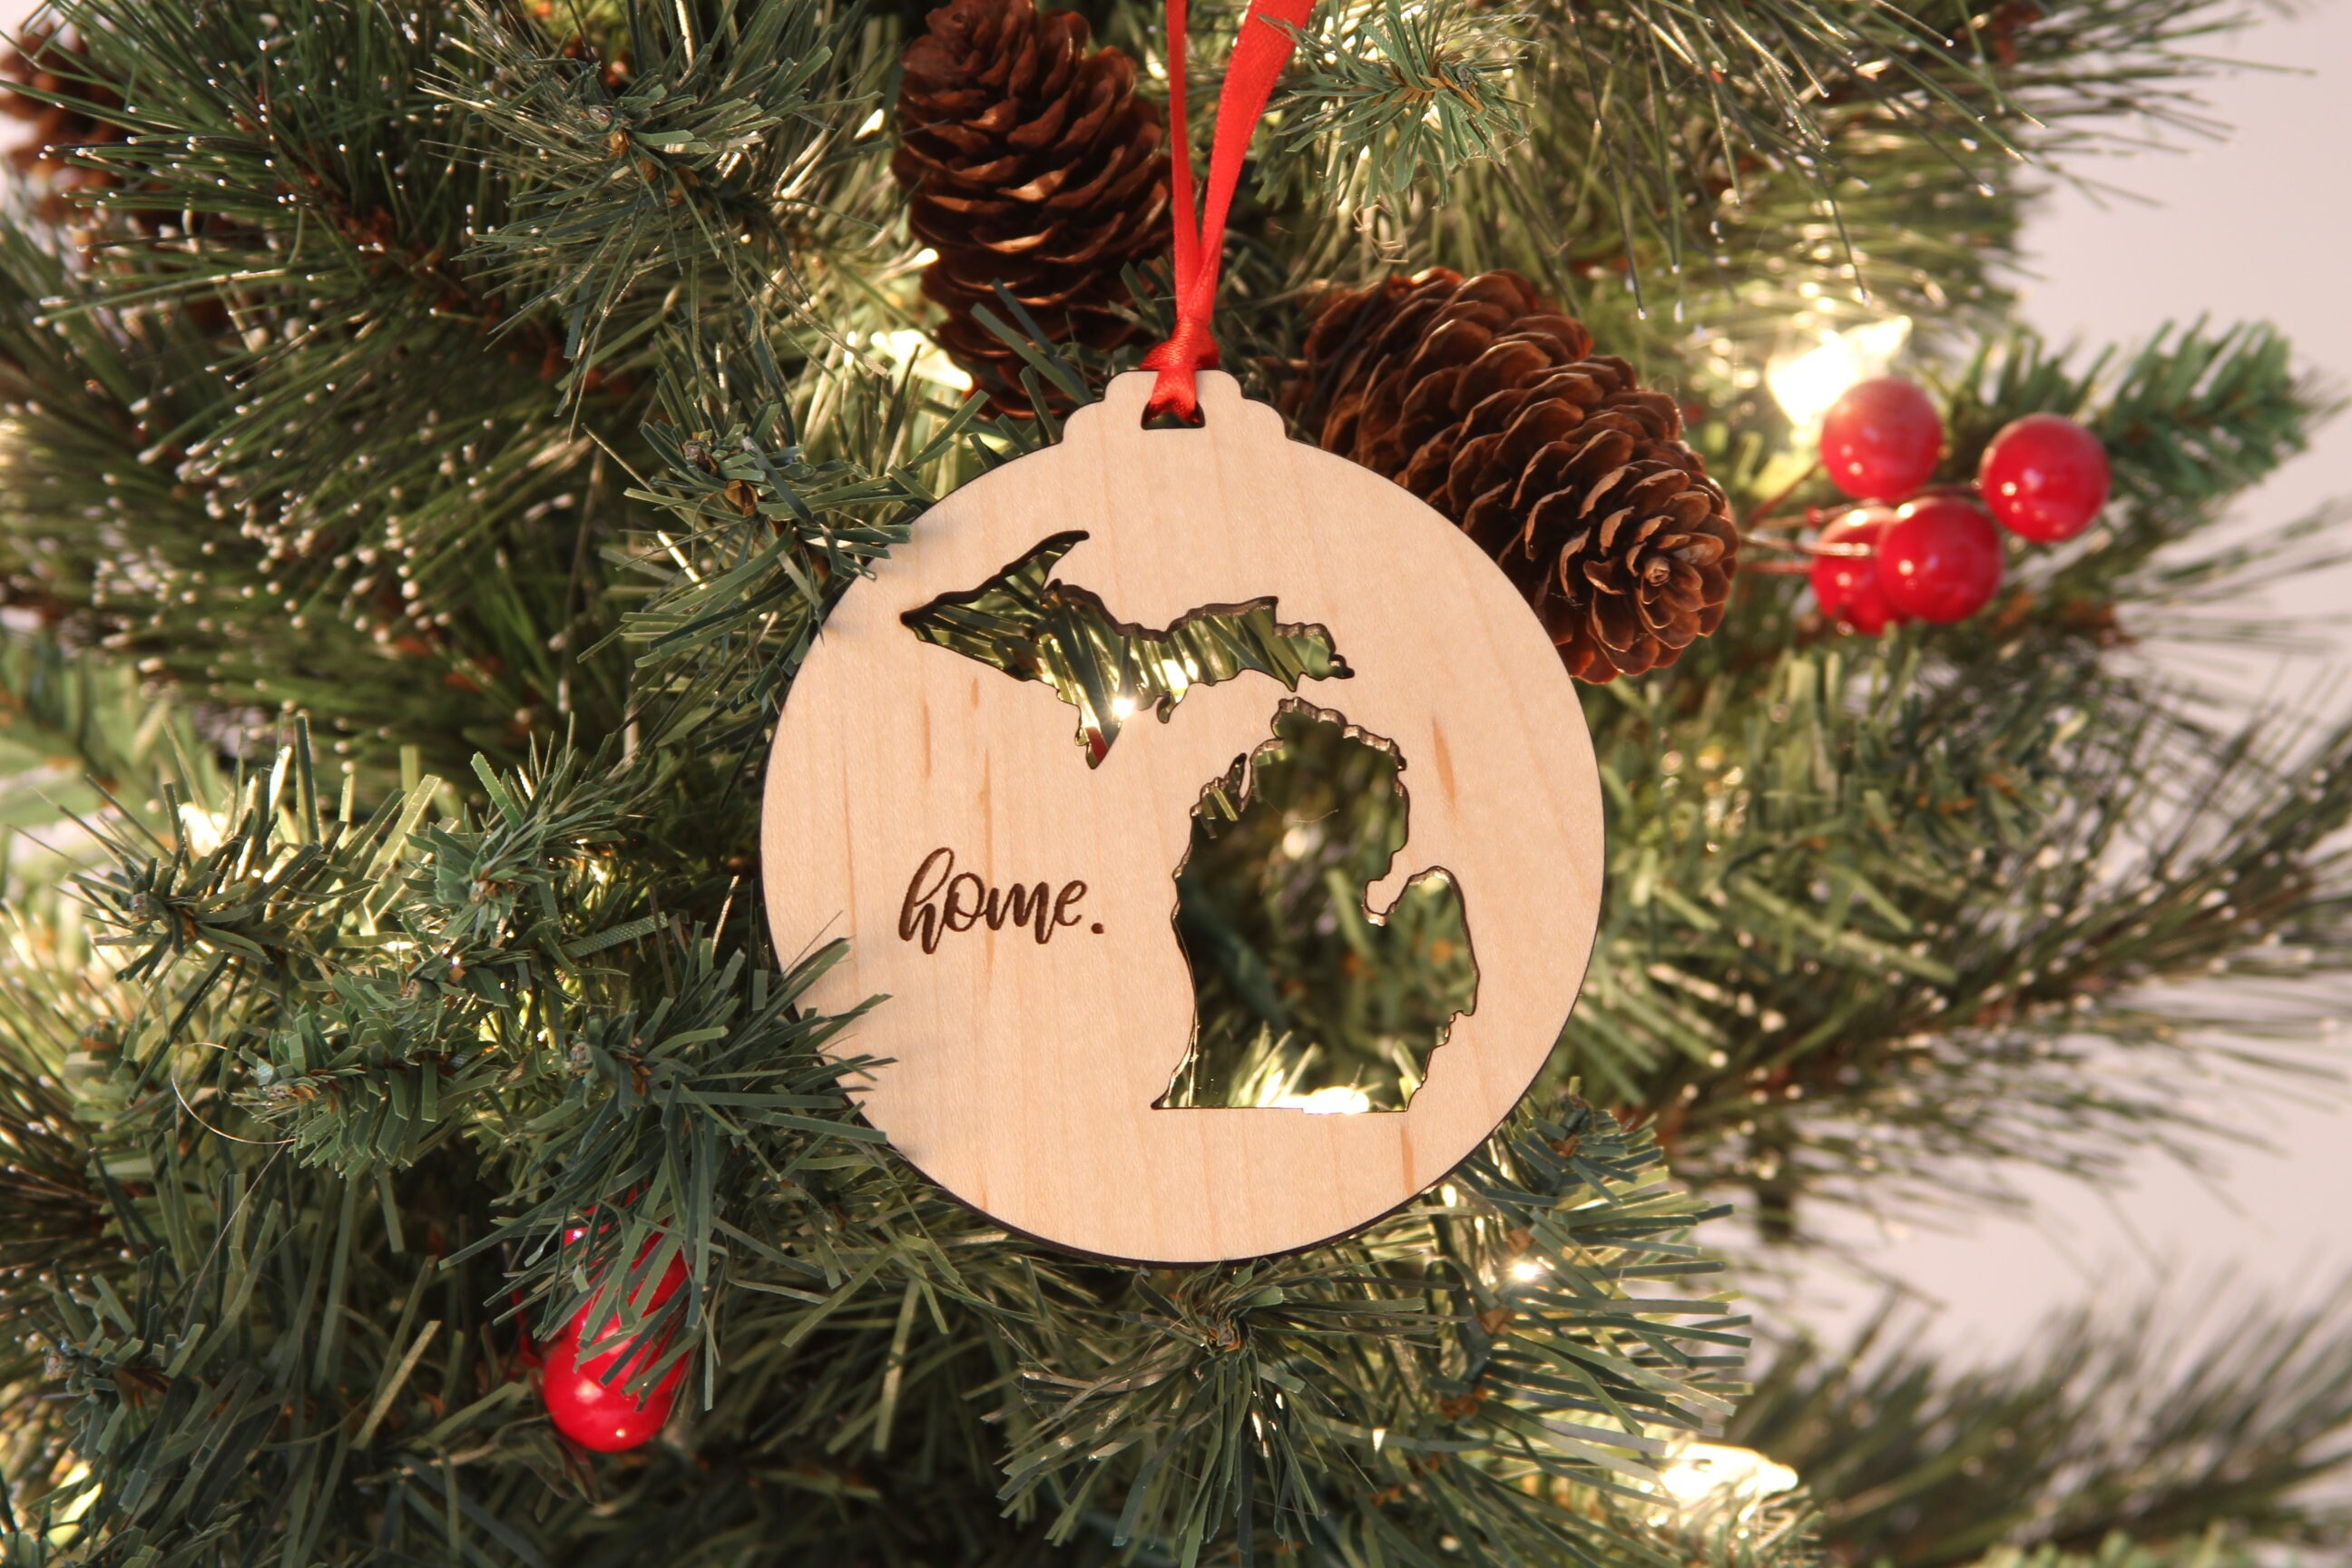 State of South Carolina Merry Christmas Engraved Wood Tree Ornament